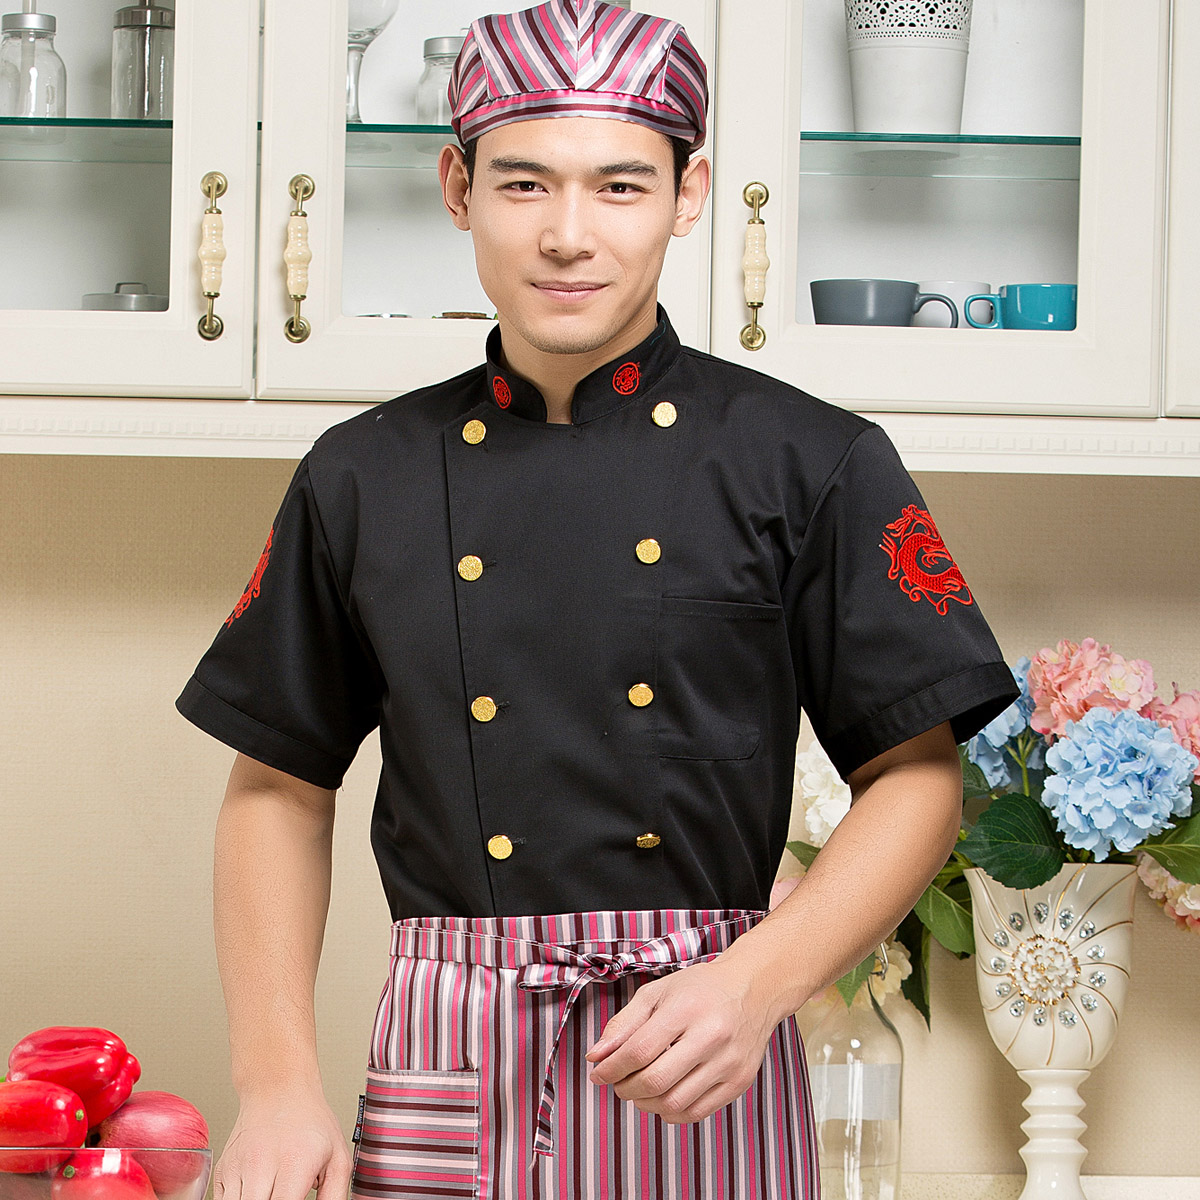 Black and white double embroidered dragon hotel chefs clothing mens and womens working clothes chefs clothing short sleeve fast food restaurant uniform canteen